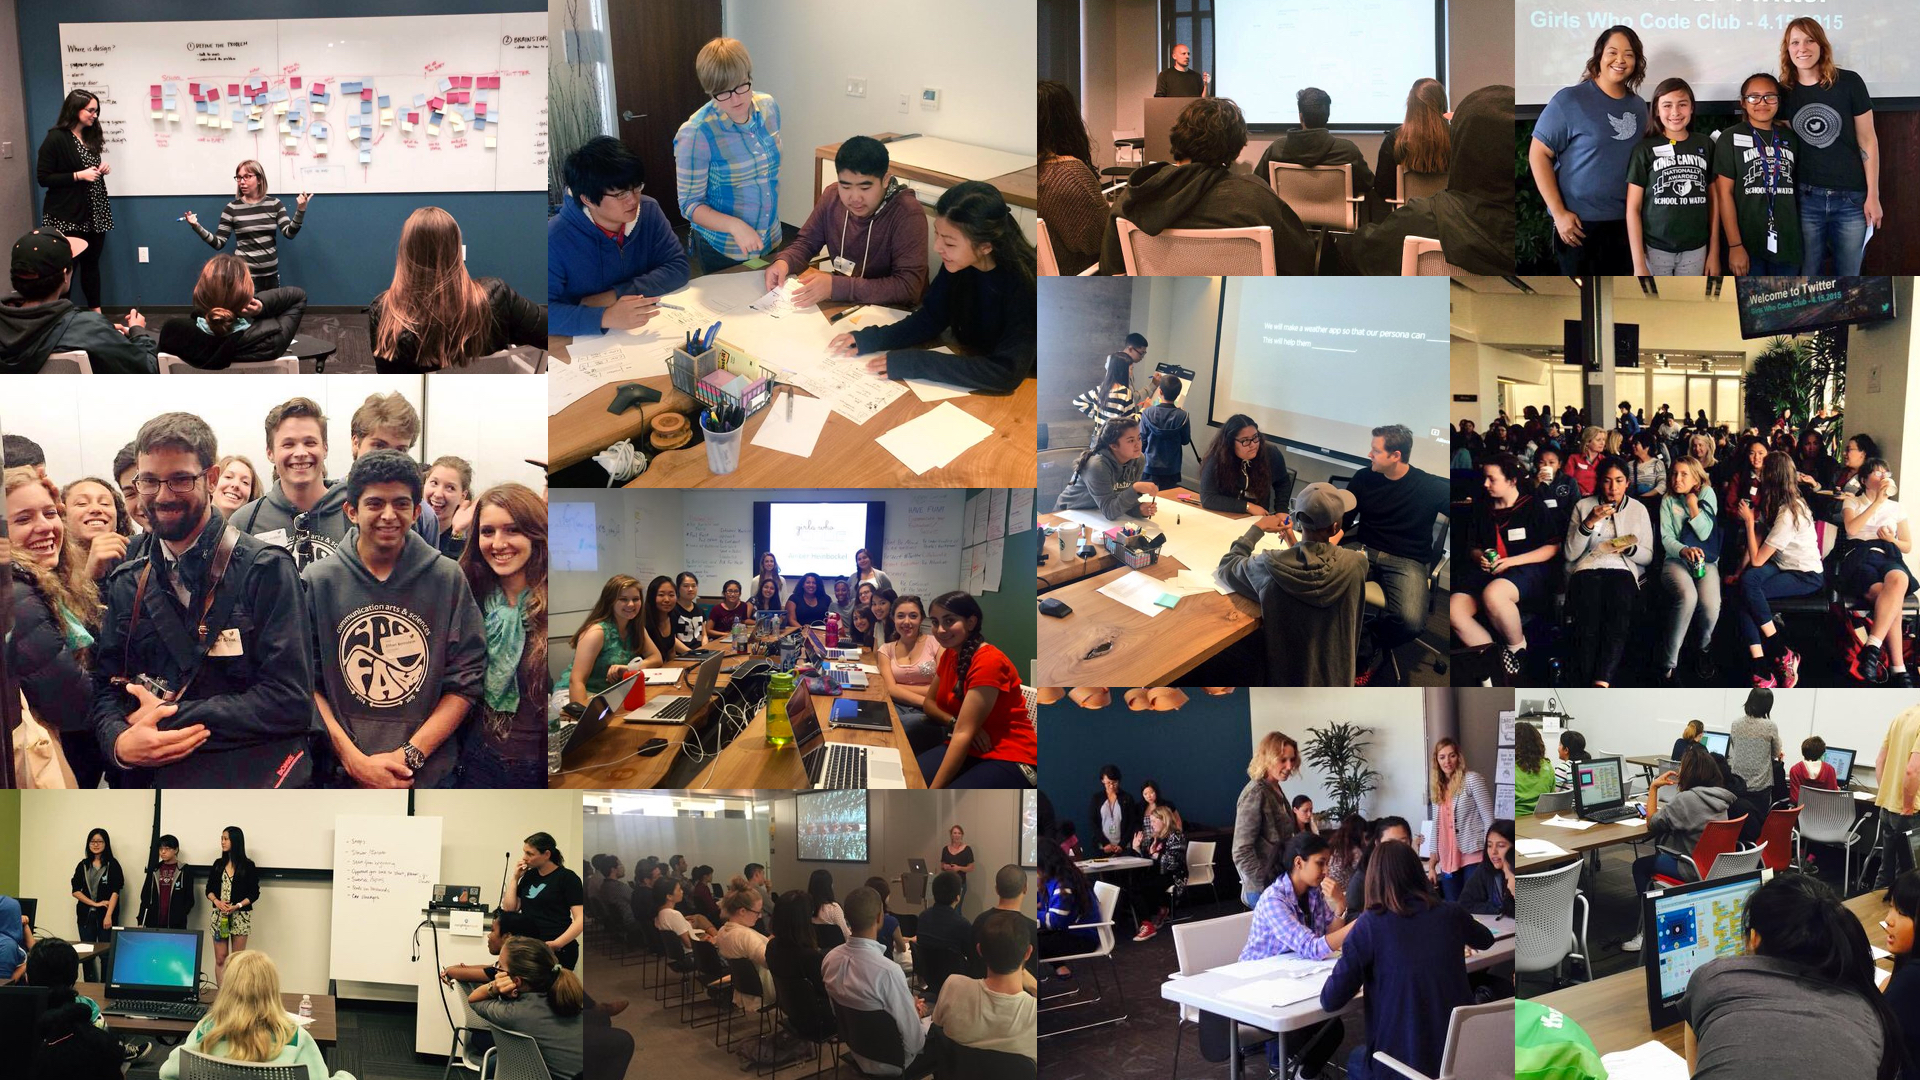 A sampling of photos from the 12 design education workshops I led in 2015.